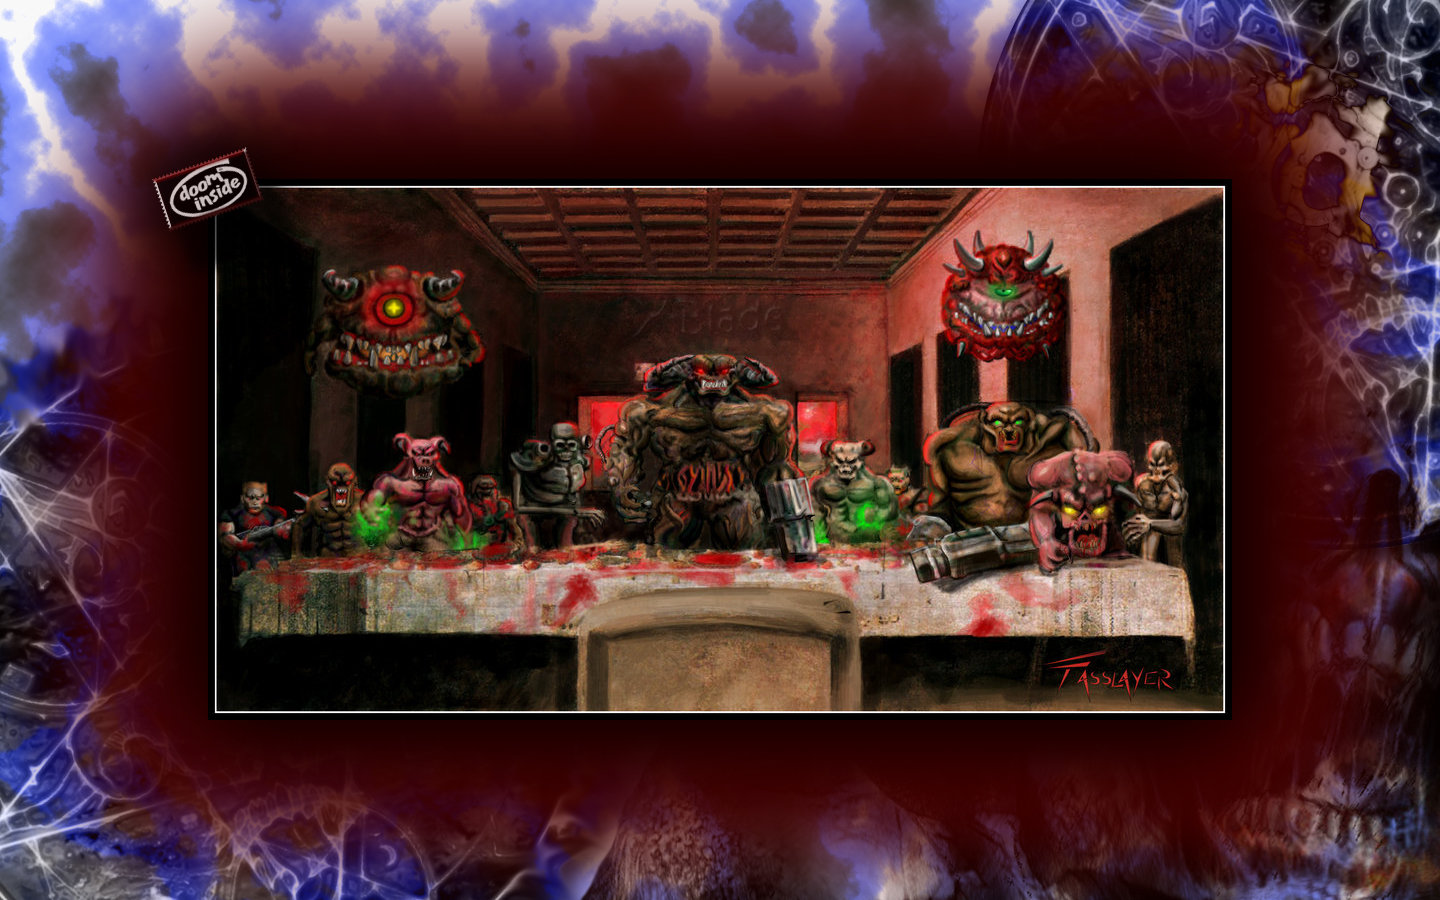 deviantartcomartDoom Last Supper Wallpaper 2 124188653 1440x900